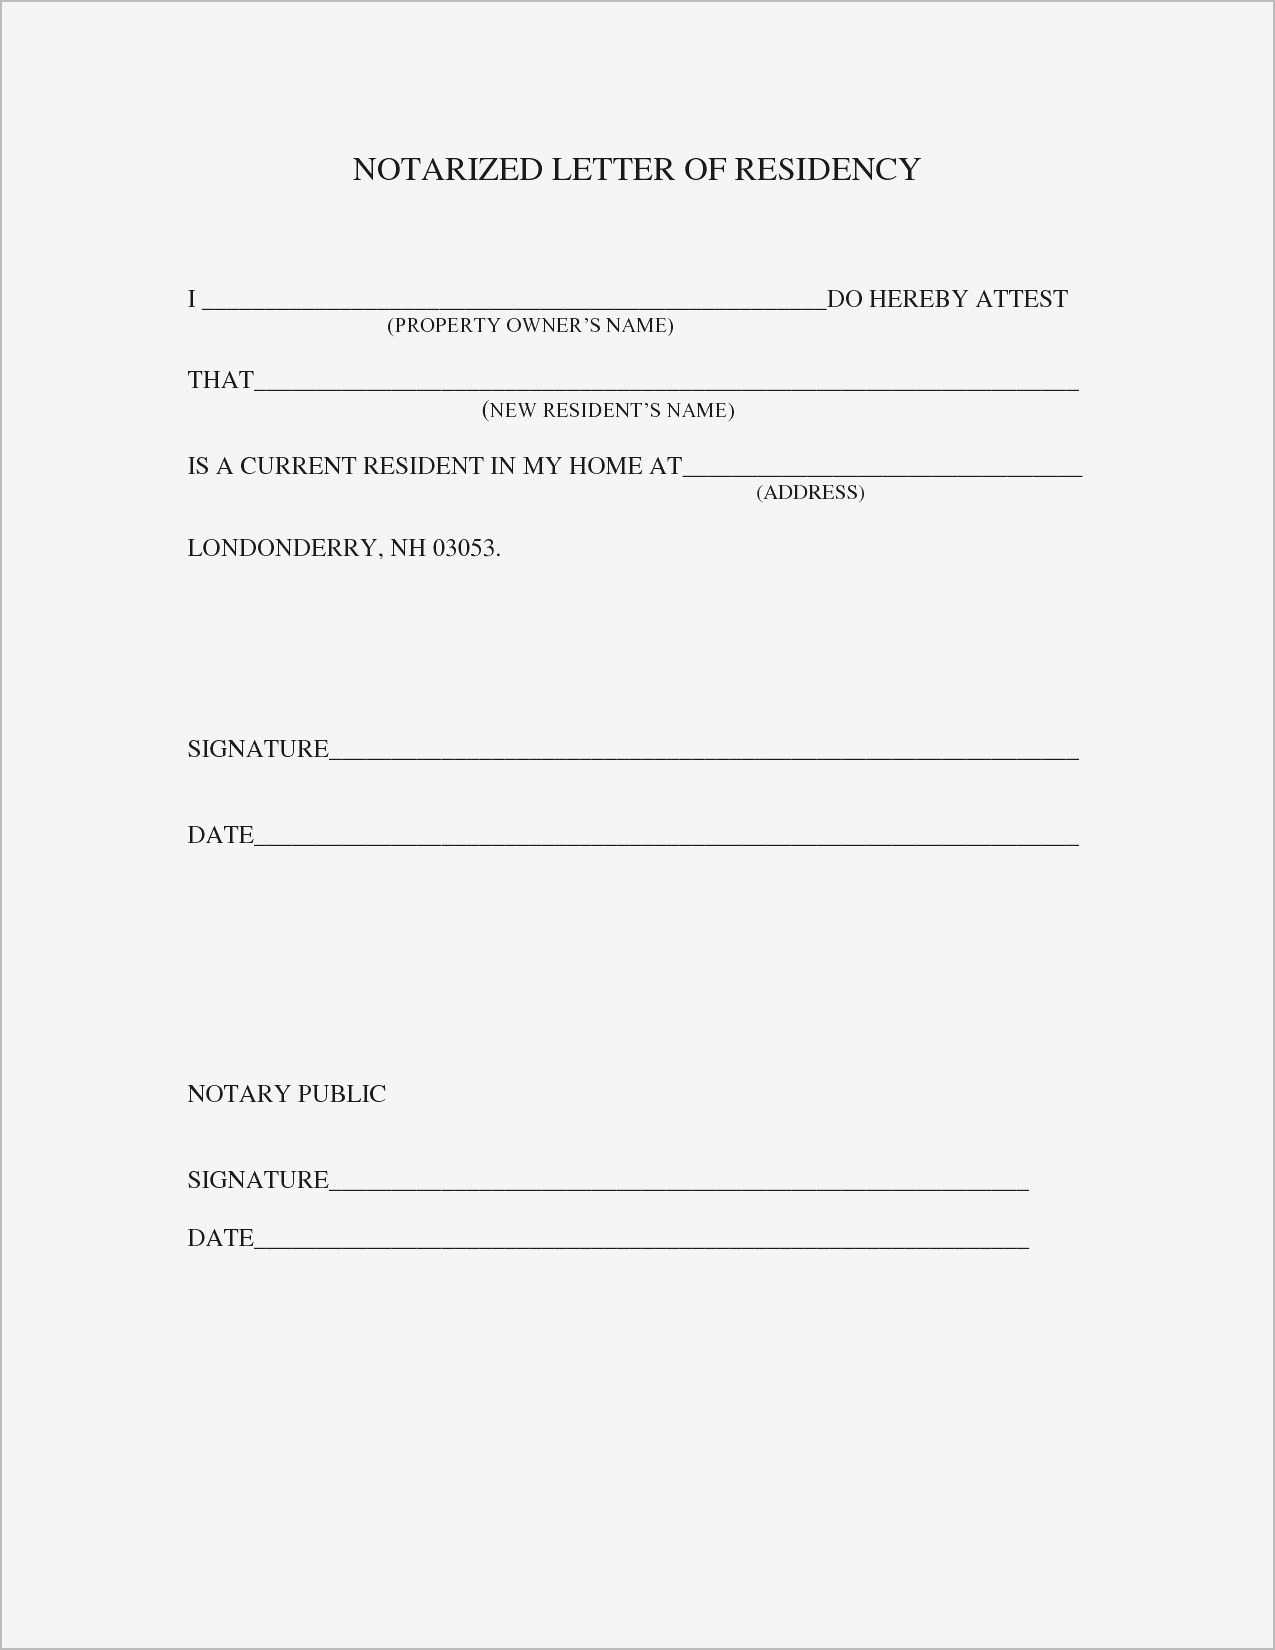 Printable Notarized Letter Of Residency Template - Notarized Letter format Elegant Printable Notarized Letter Residency